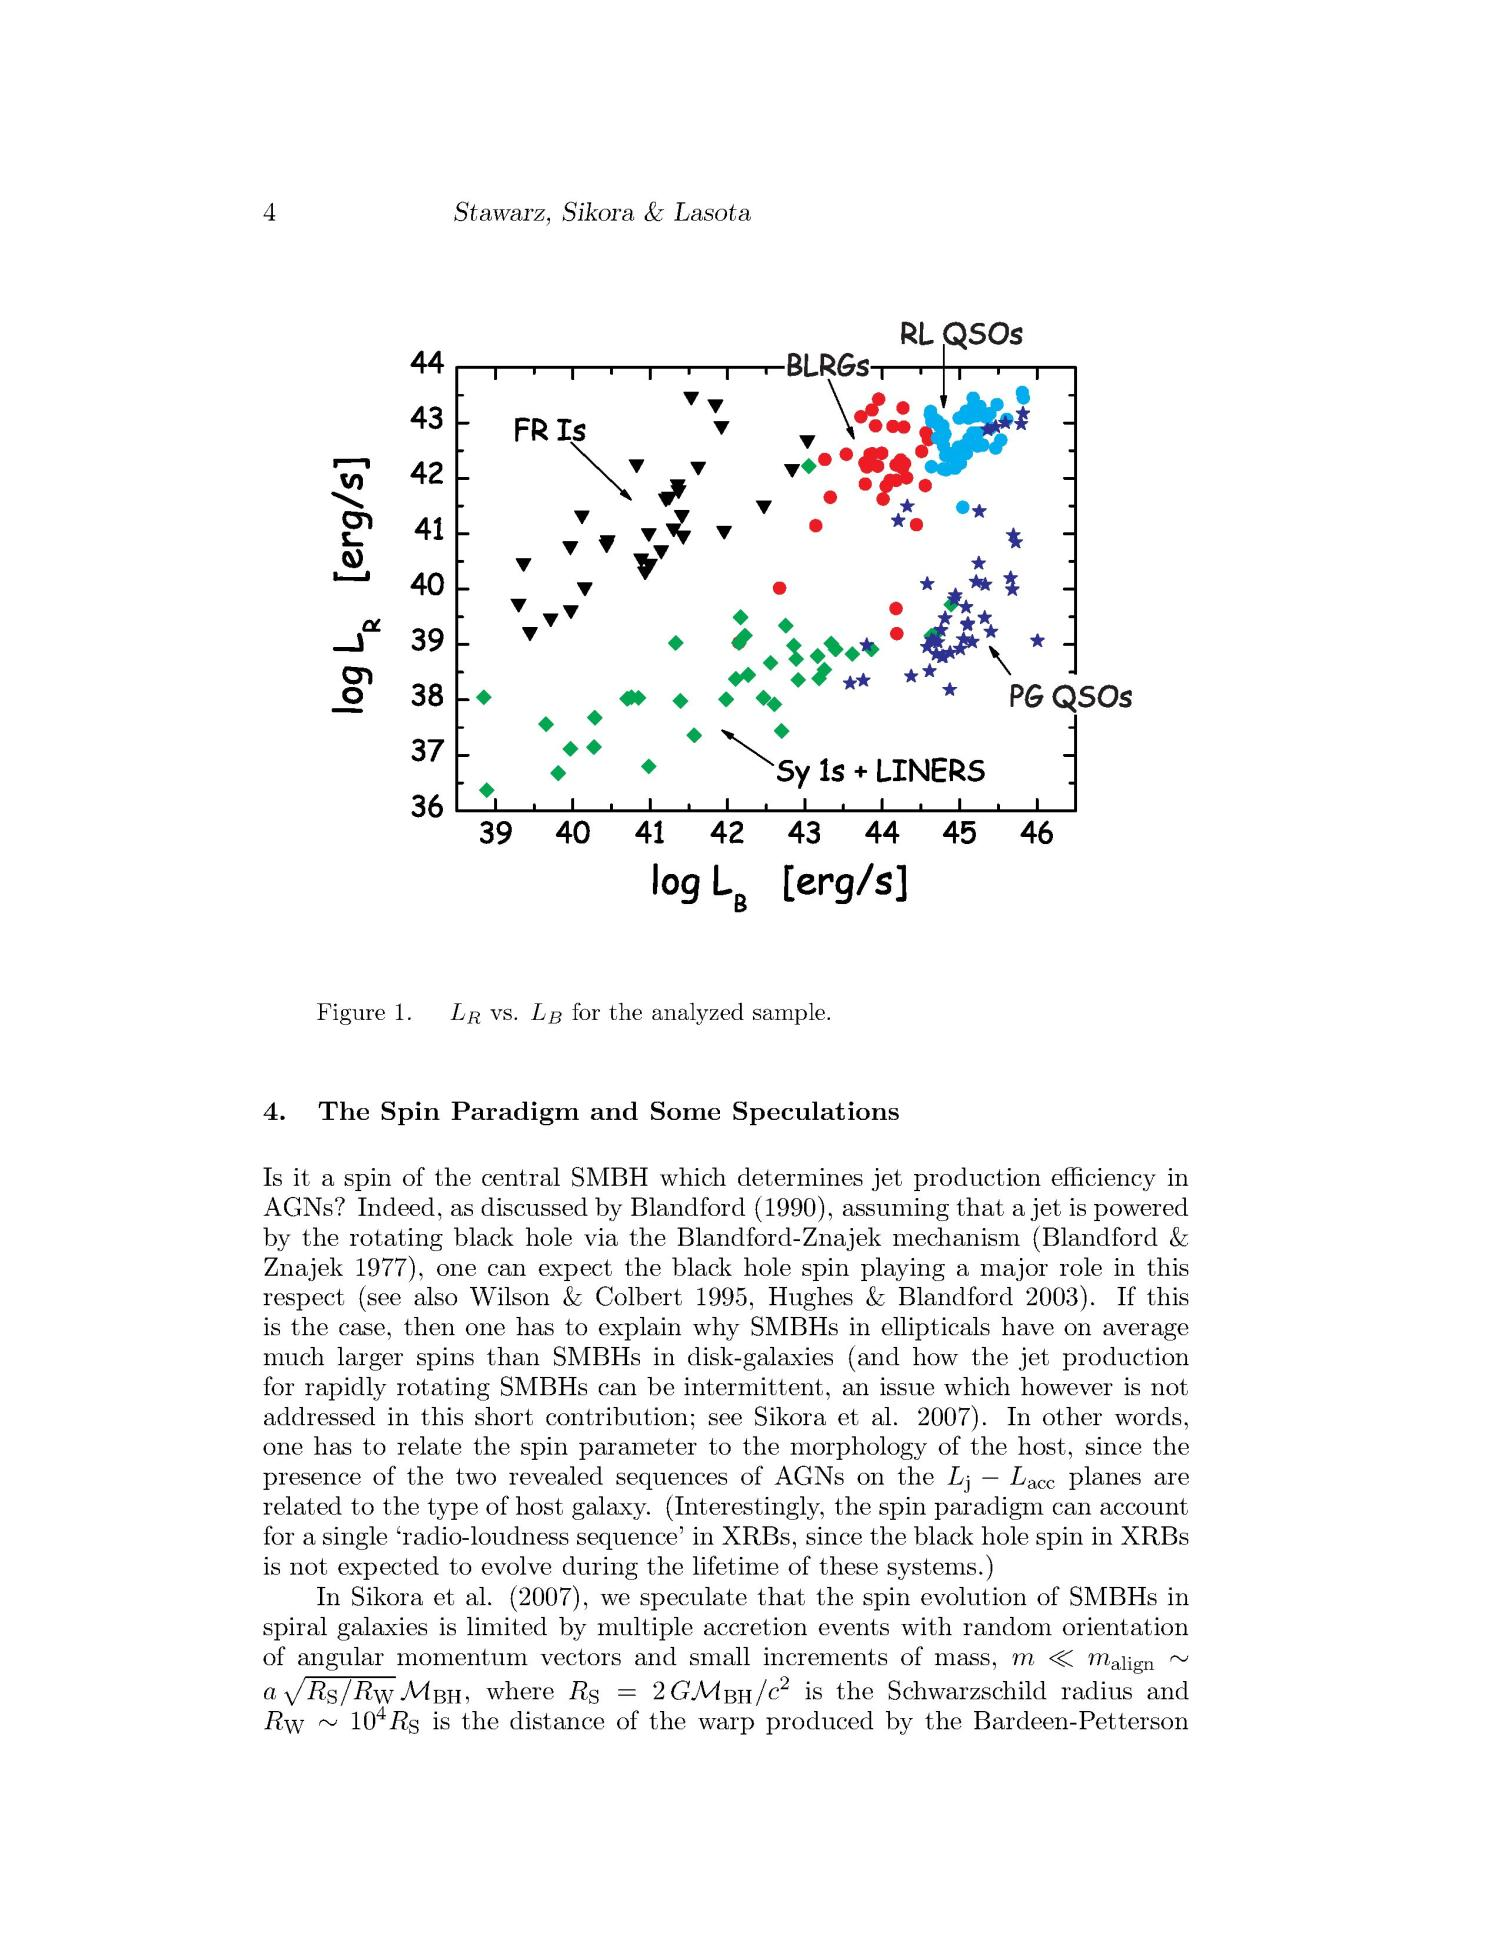 Radio Loudness of AGNs: Host Galaxy Morphology and the Spin Paradigm                                                                                                      [Sequence #]: 4 of 7